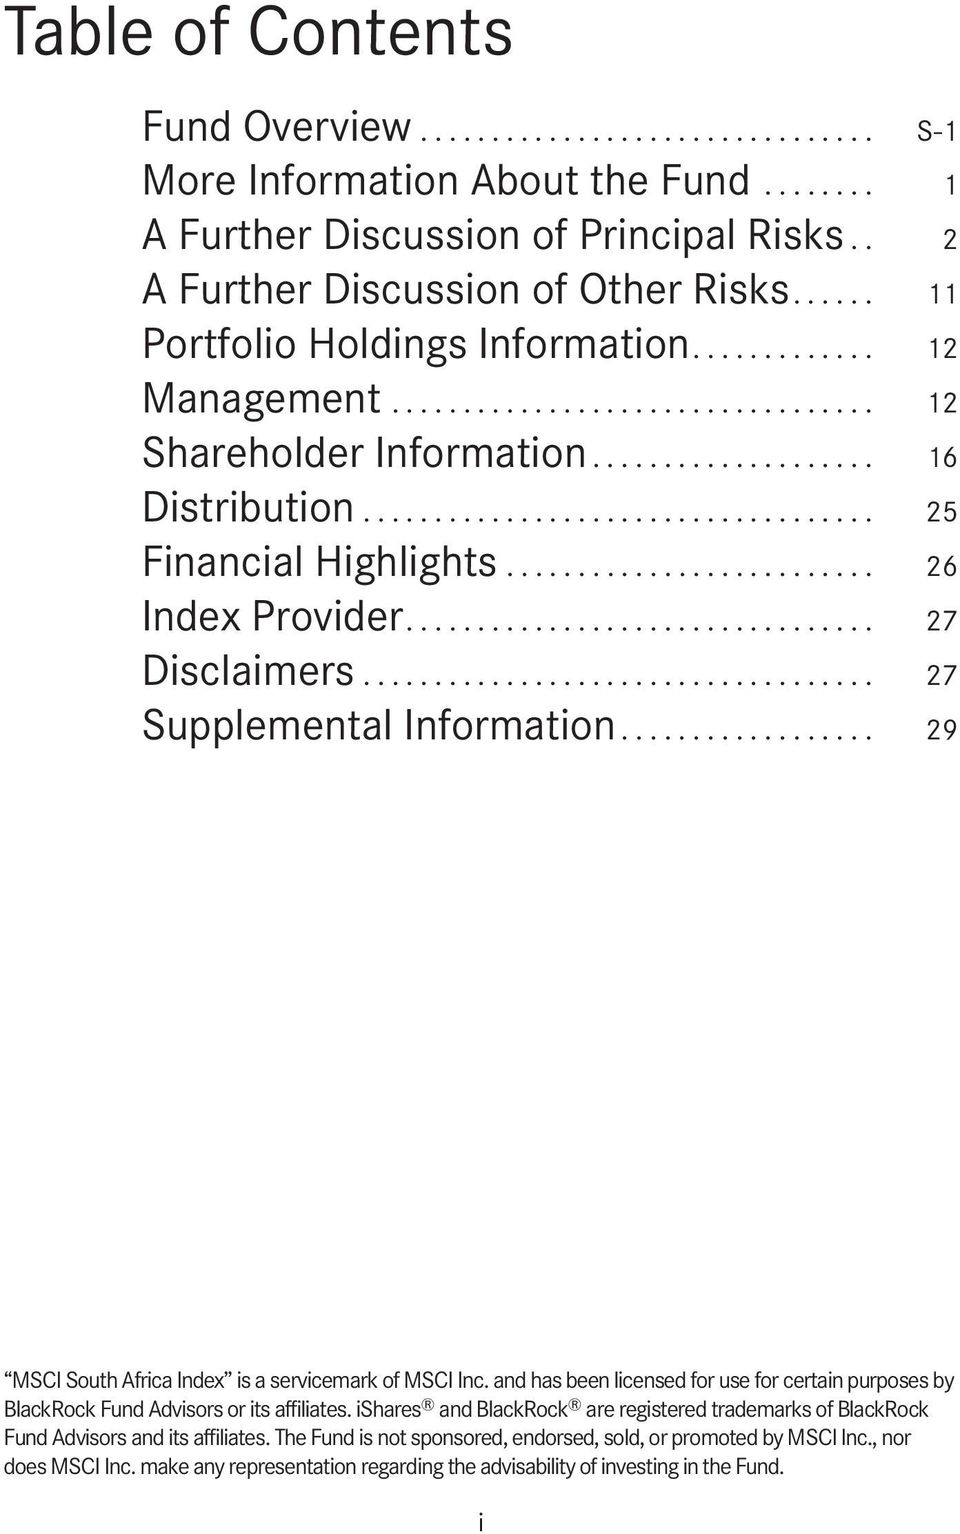 .. 29 MSCI South Africa Index is a servicemark of MSCI Inc. and has been licensed for use for certain purposes by BlackRock Fund Advisors or its affiliates.